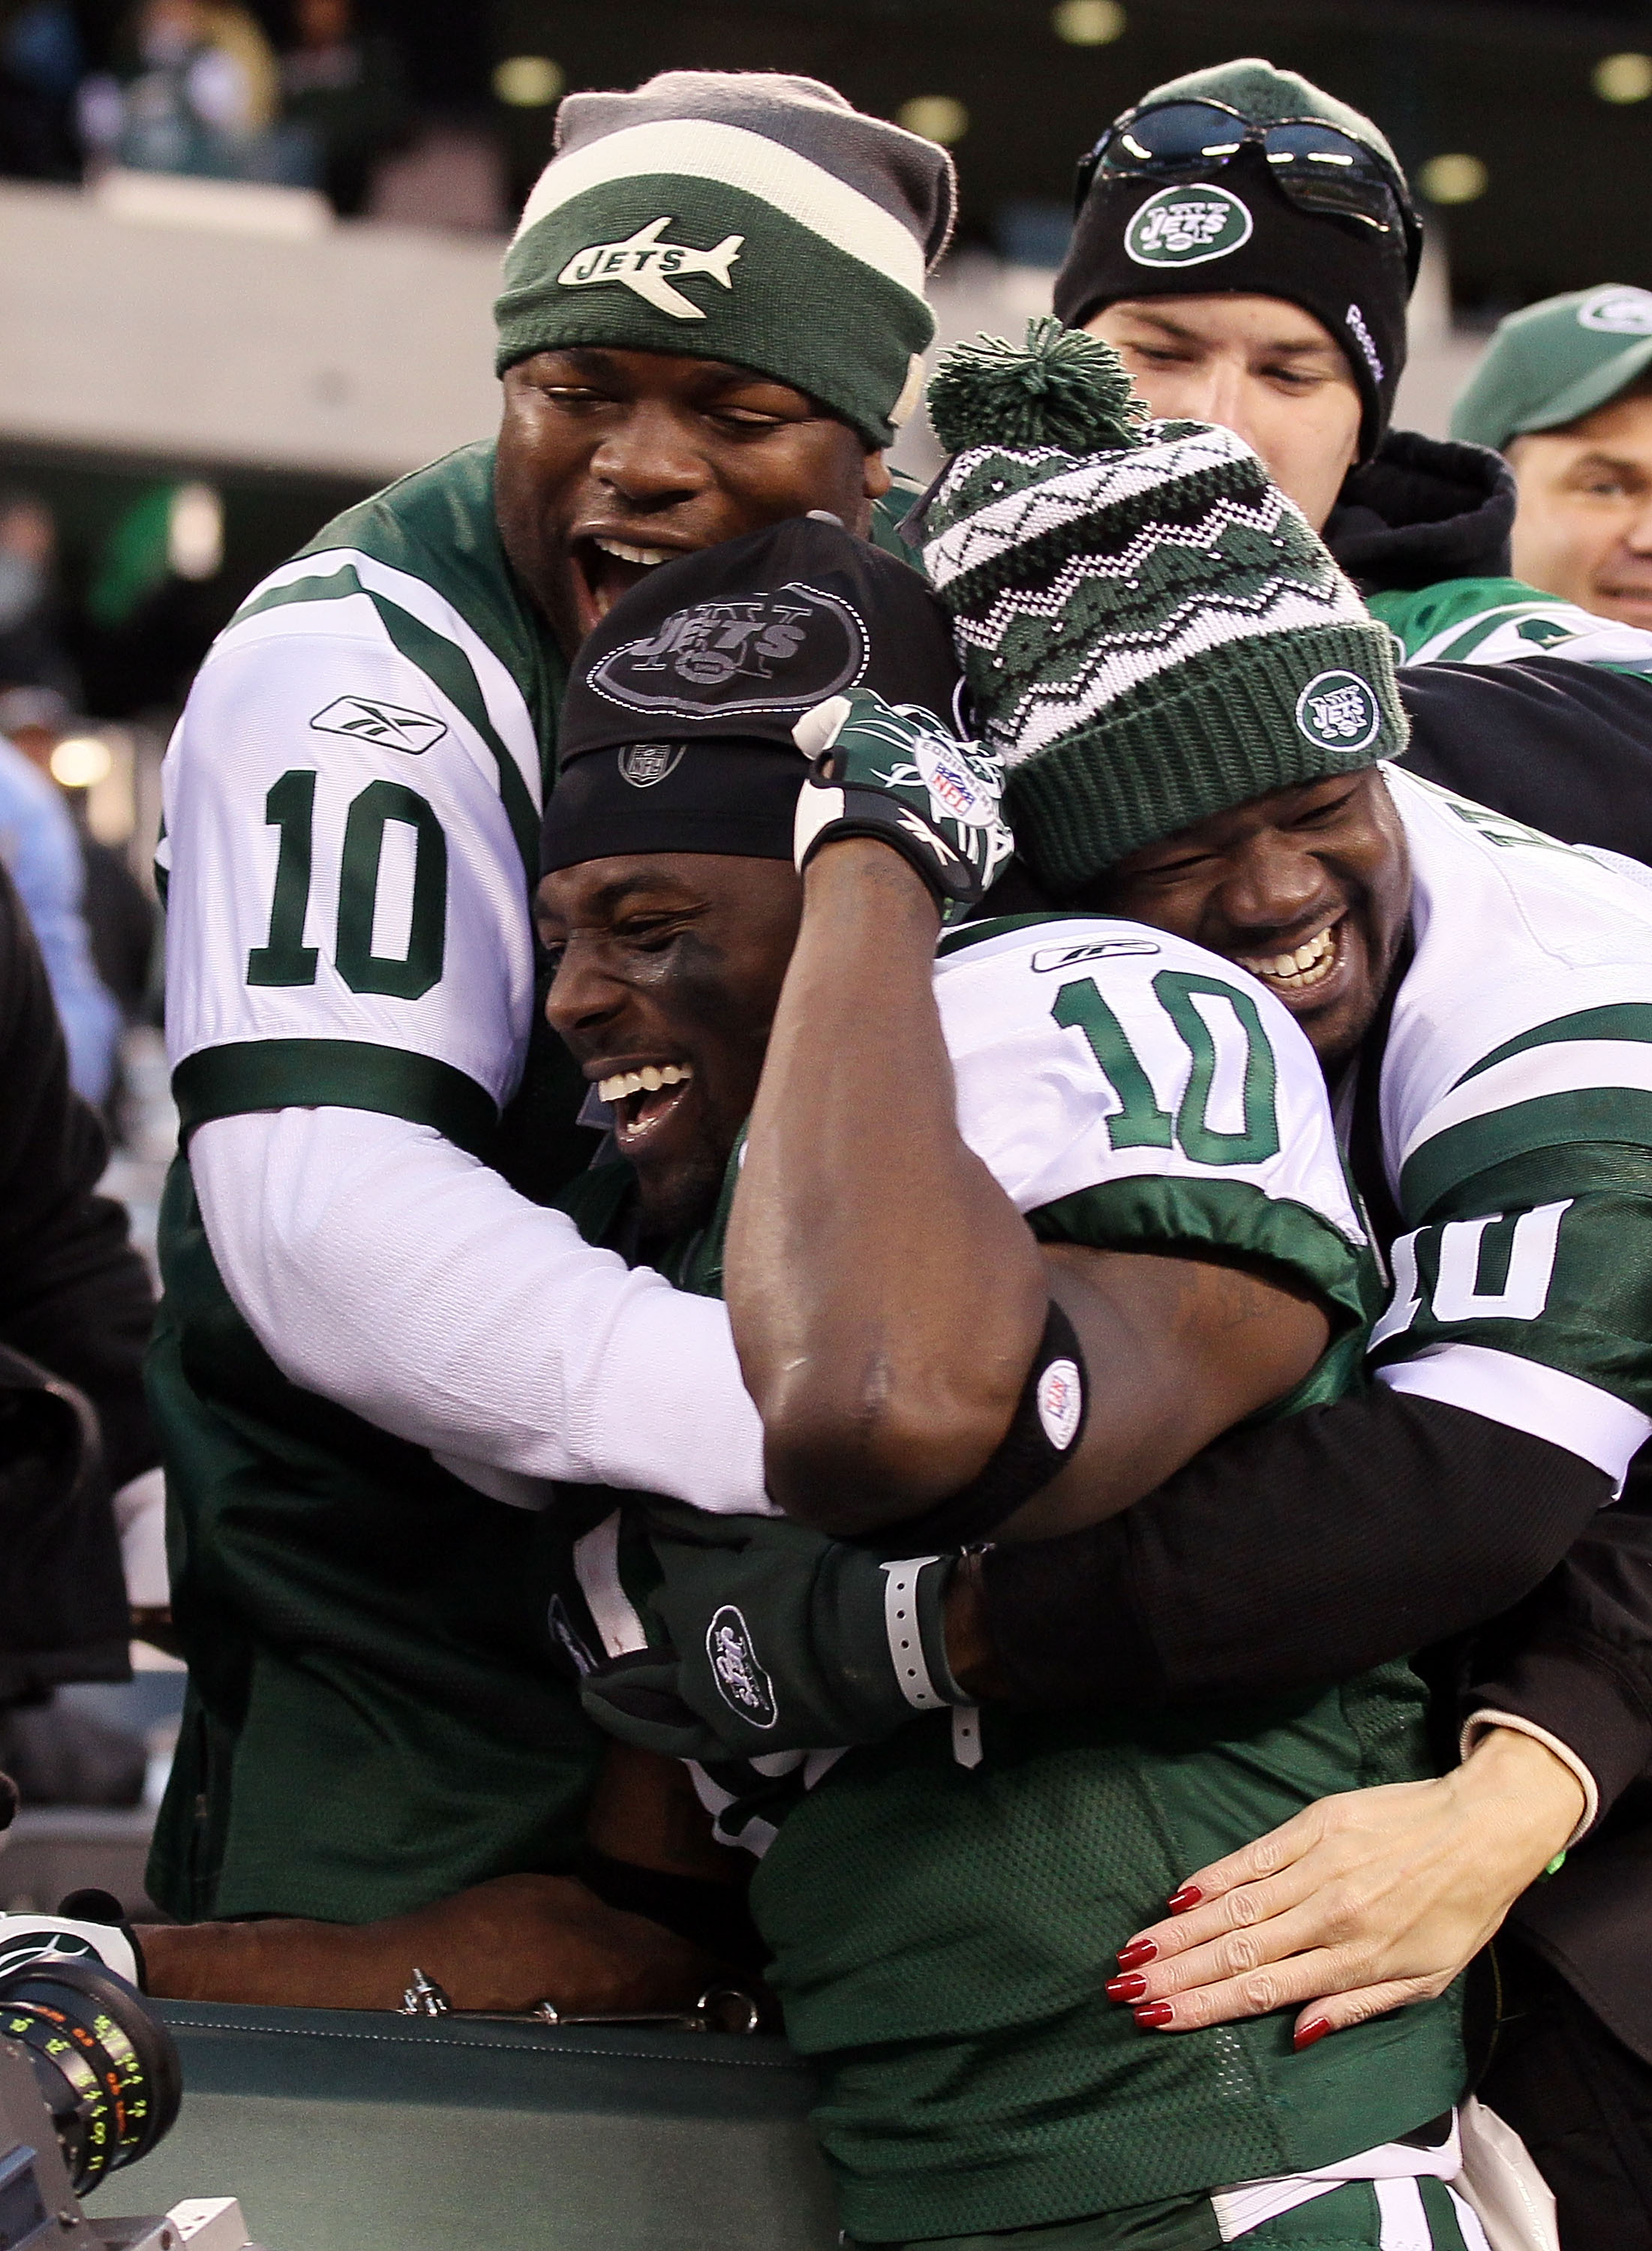 EAST RUTHERFORD, NJ - NOVEMBER 21:  Santonio Holmes #10 of the New York Jets celebrates with fans after defeating the Houston Texans on November 21, 2010 at the New Meadowlands Stadium in East Rutherford, New Jersey. The Jets defeated the Texans 30-27.  (